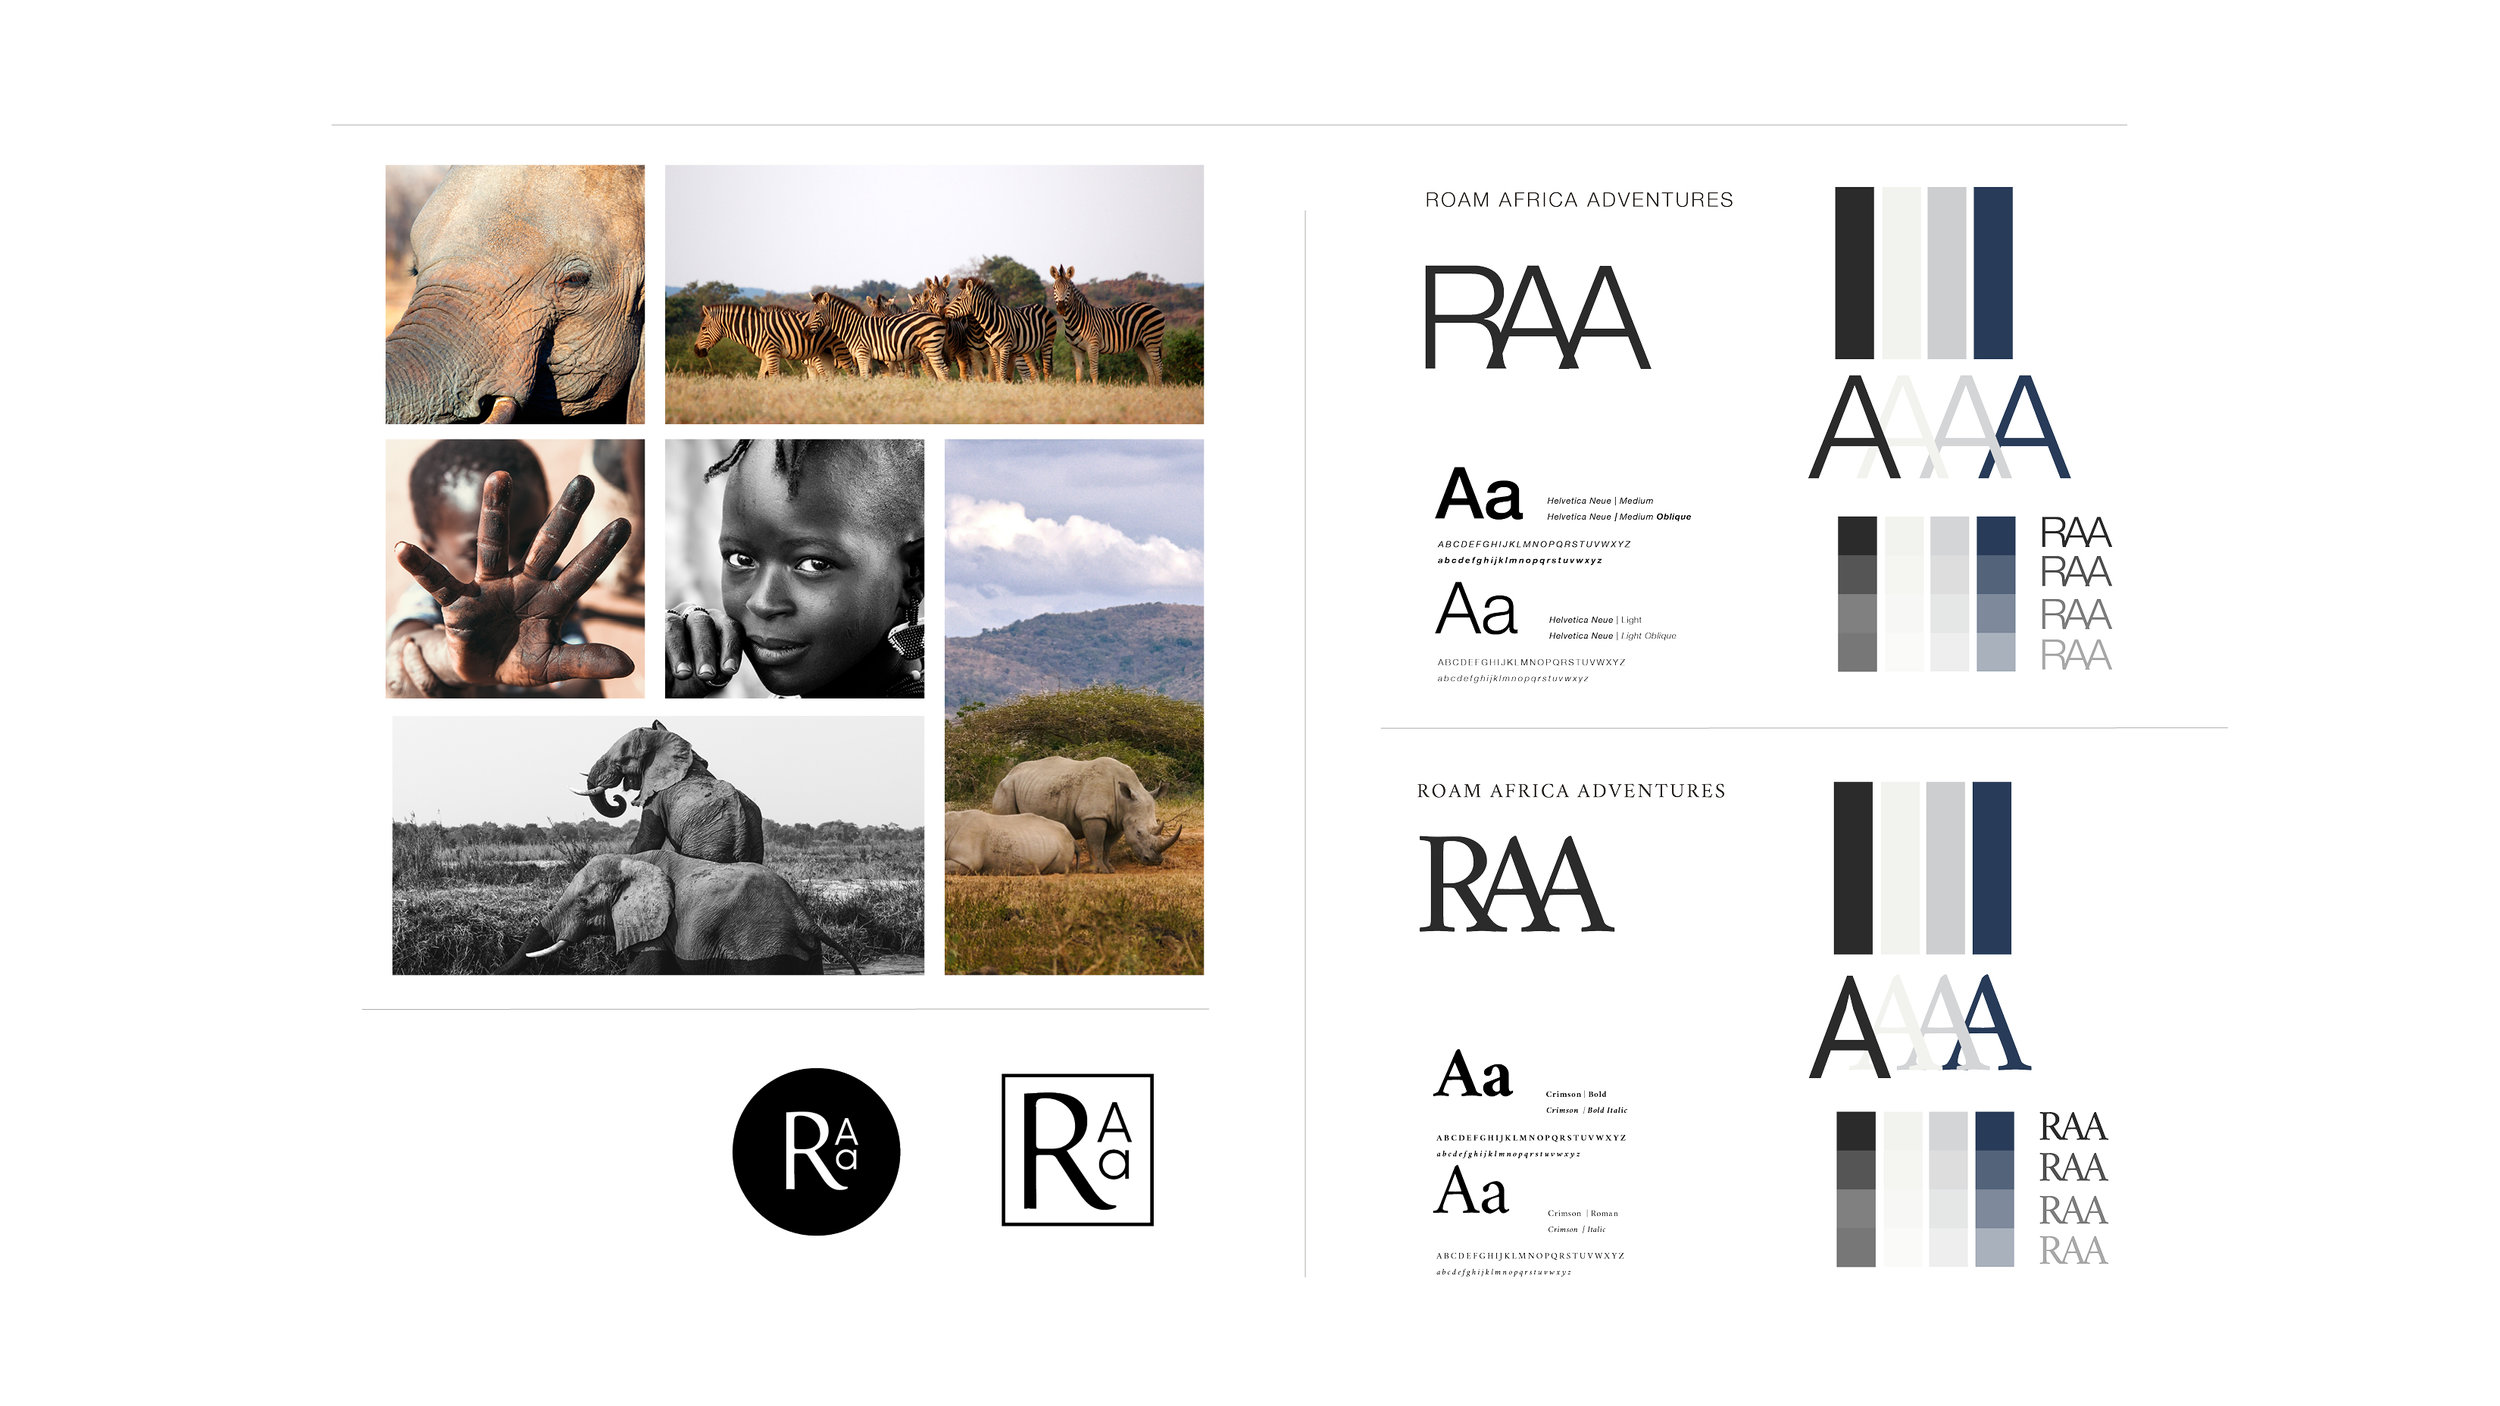 Stephanie Wencl, graphic designer for SW Designs created Roam Africa Adventure (RAA's) logo design, supporting assets, marketing materials and squarespace website.